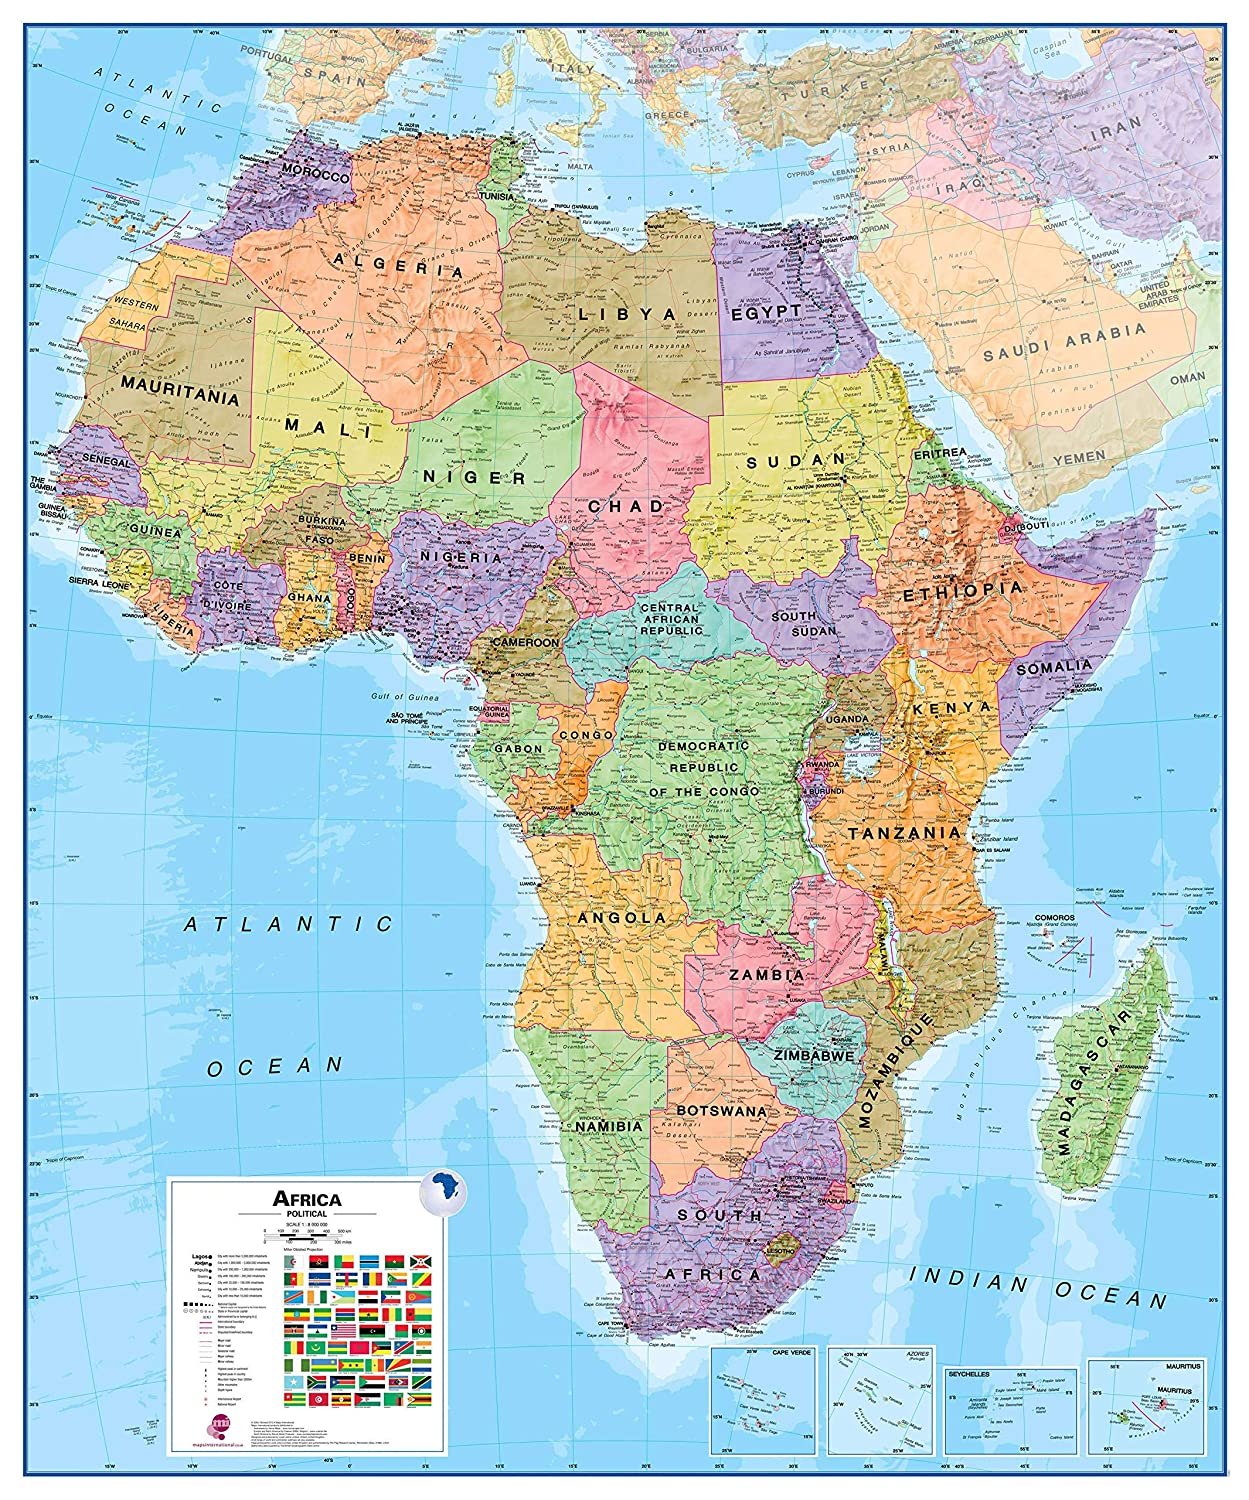 Whole Map Of The World.Maps International Large Political Africa Wall Map Laminated 39 X 47